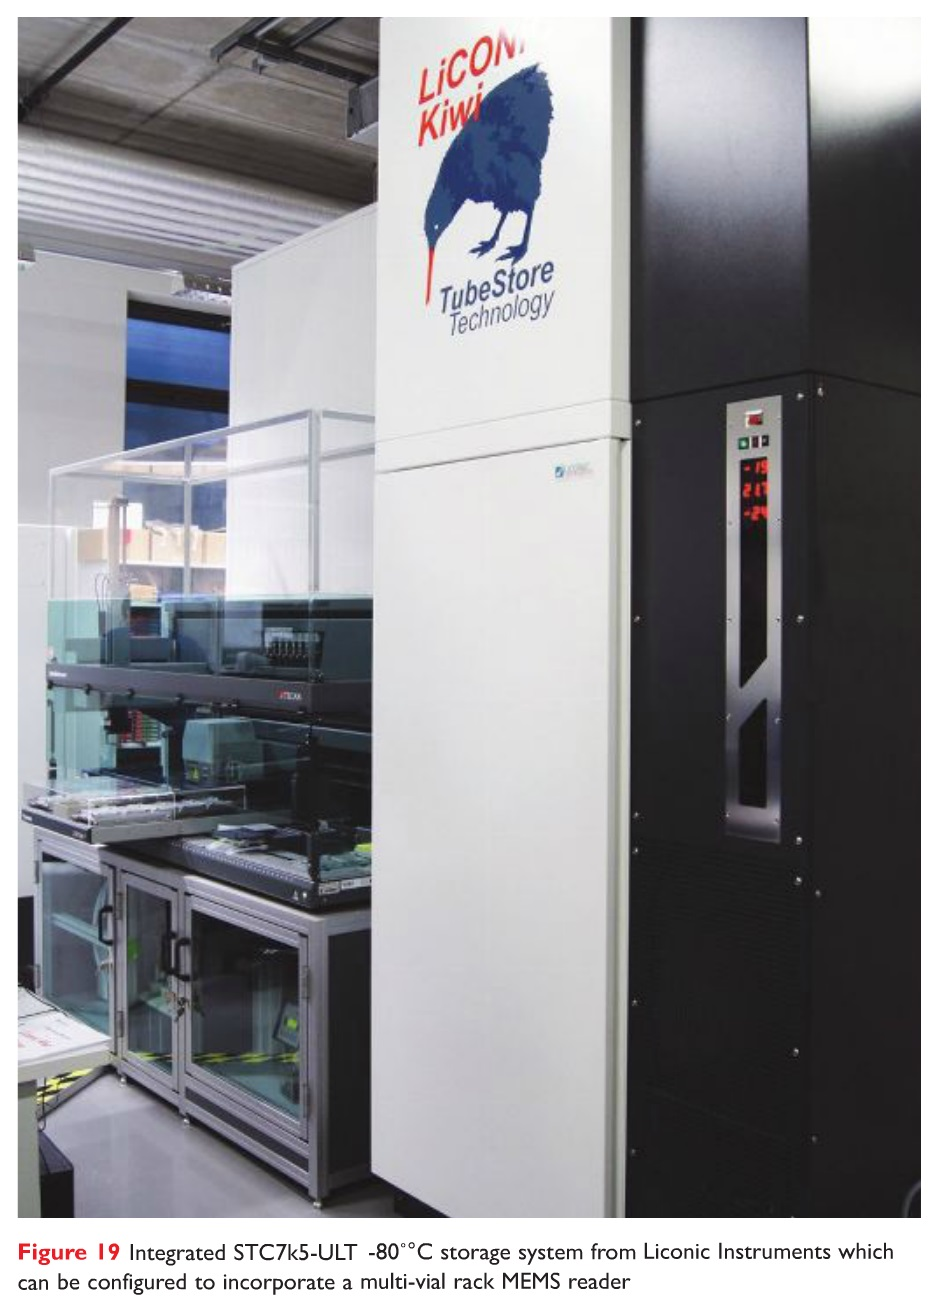 Figure 19 Integrated STC7k5-ULT -80 degrees celcius storage system from Liconic Instruments